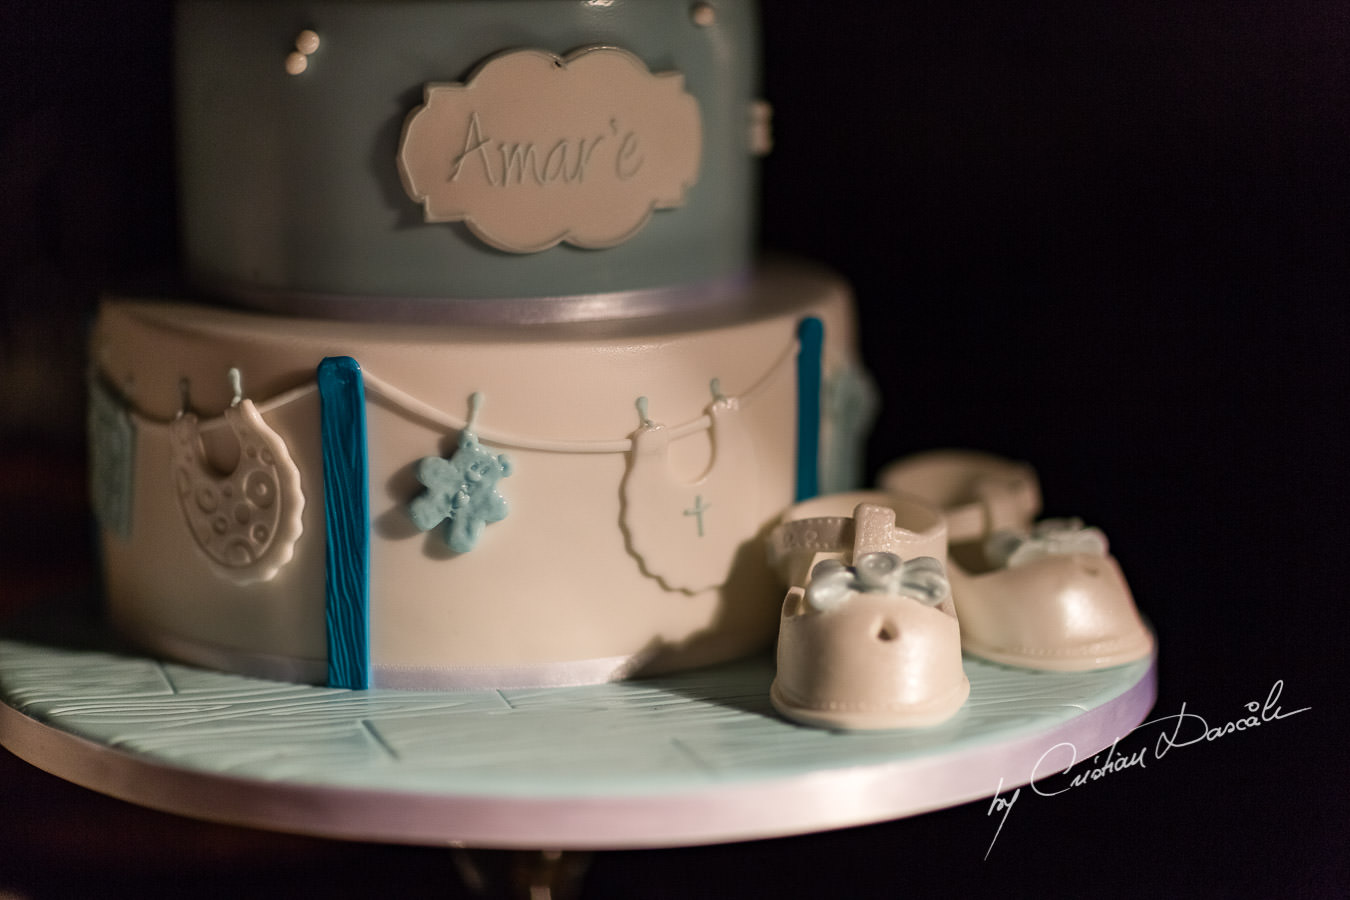 Amare's Christening cake at the beautiful Anassa Hotel photographed by Cyprus Photographer Cristian Dascalu.